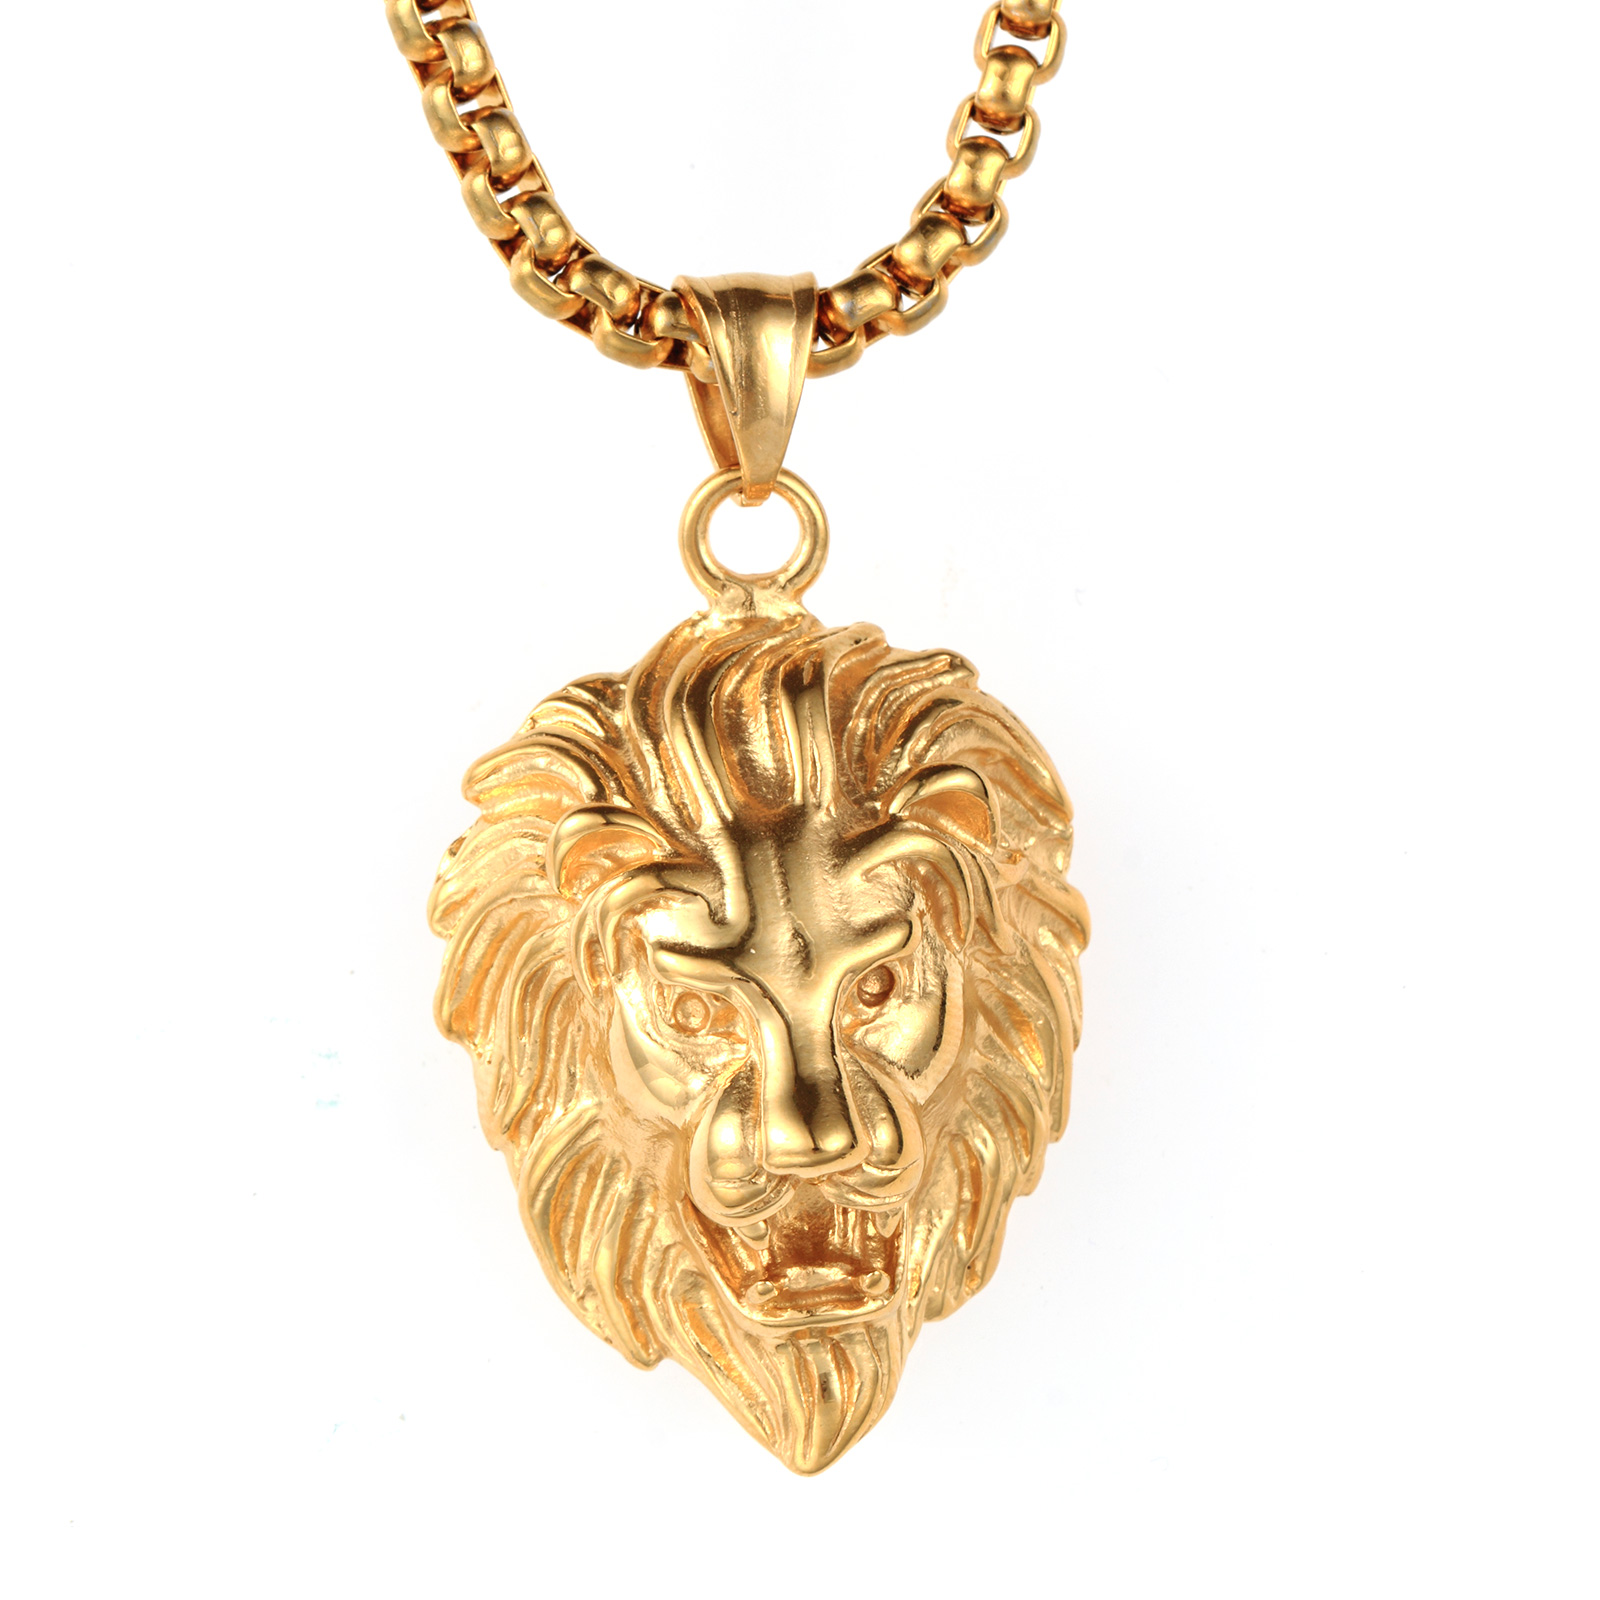 shop denimes necklace pendant jewellery lion serge silver